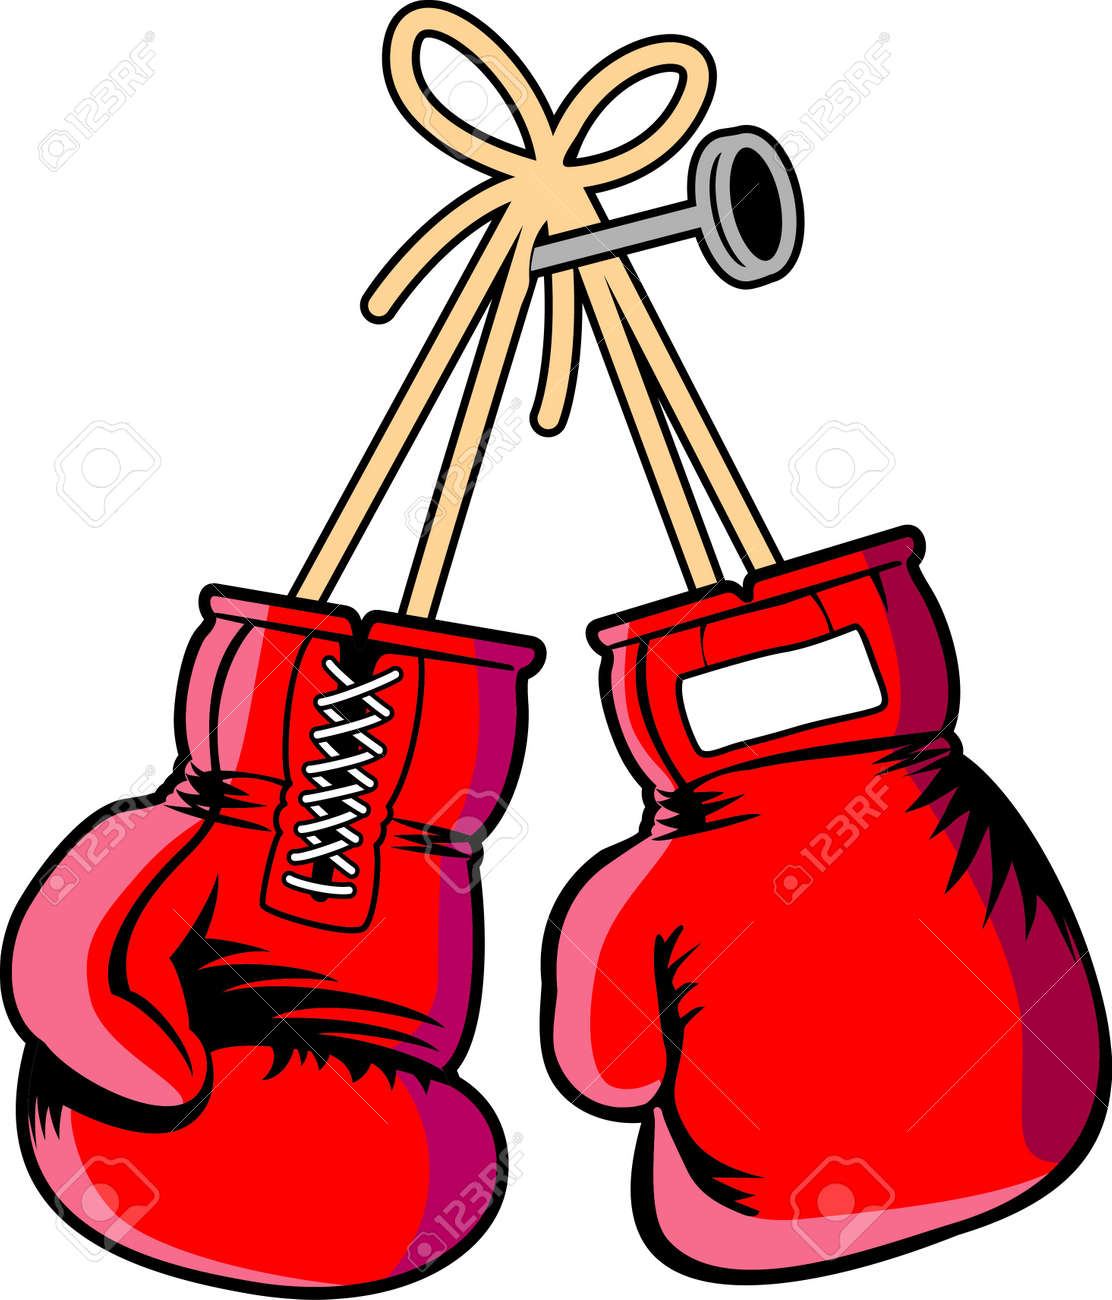 34 485 boxing stock vector illustration and royalty free boxing clipart rh 123rf com boxing clipart png boxing clip art free images